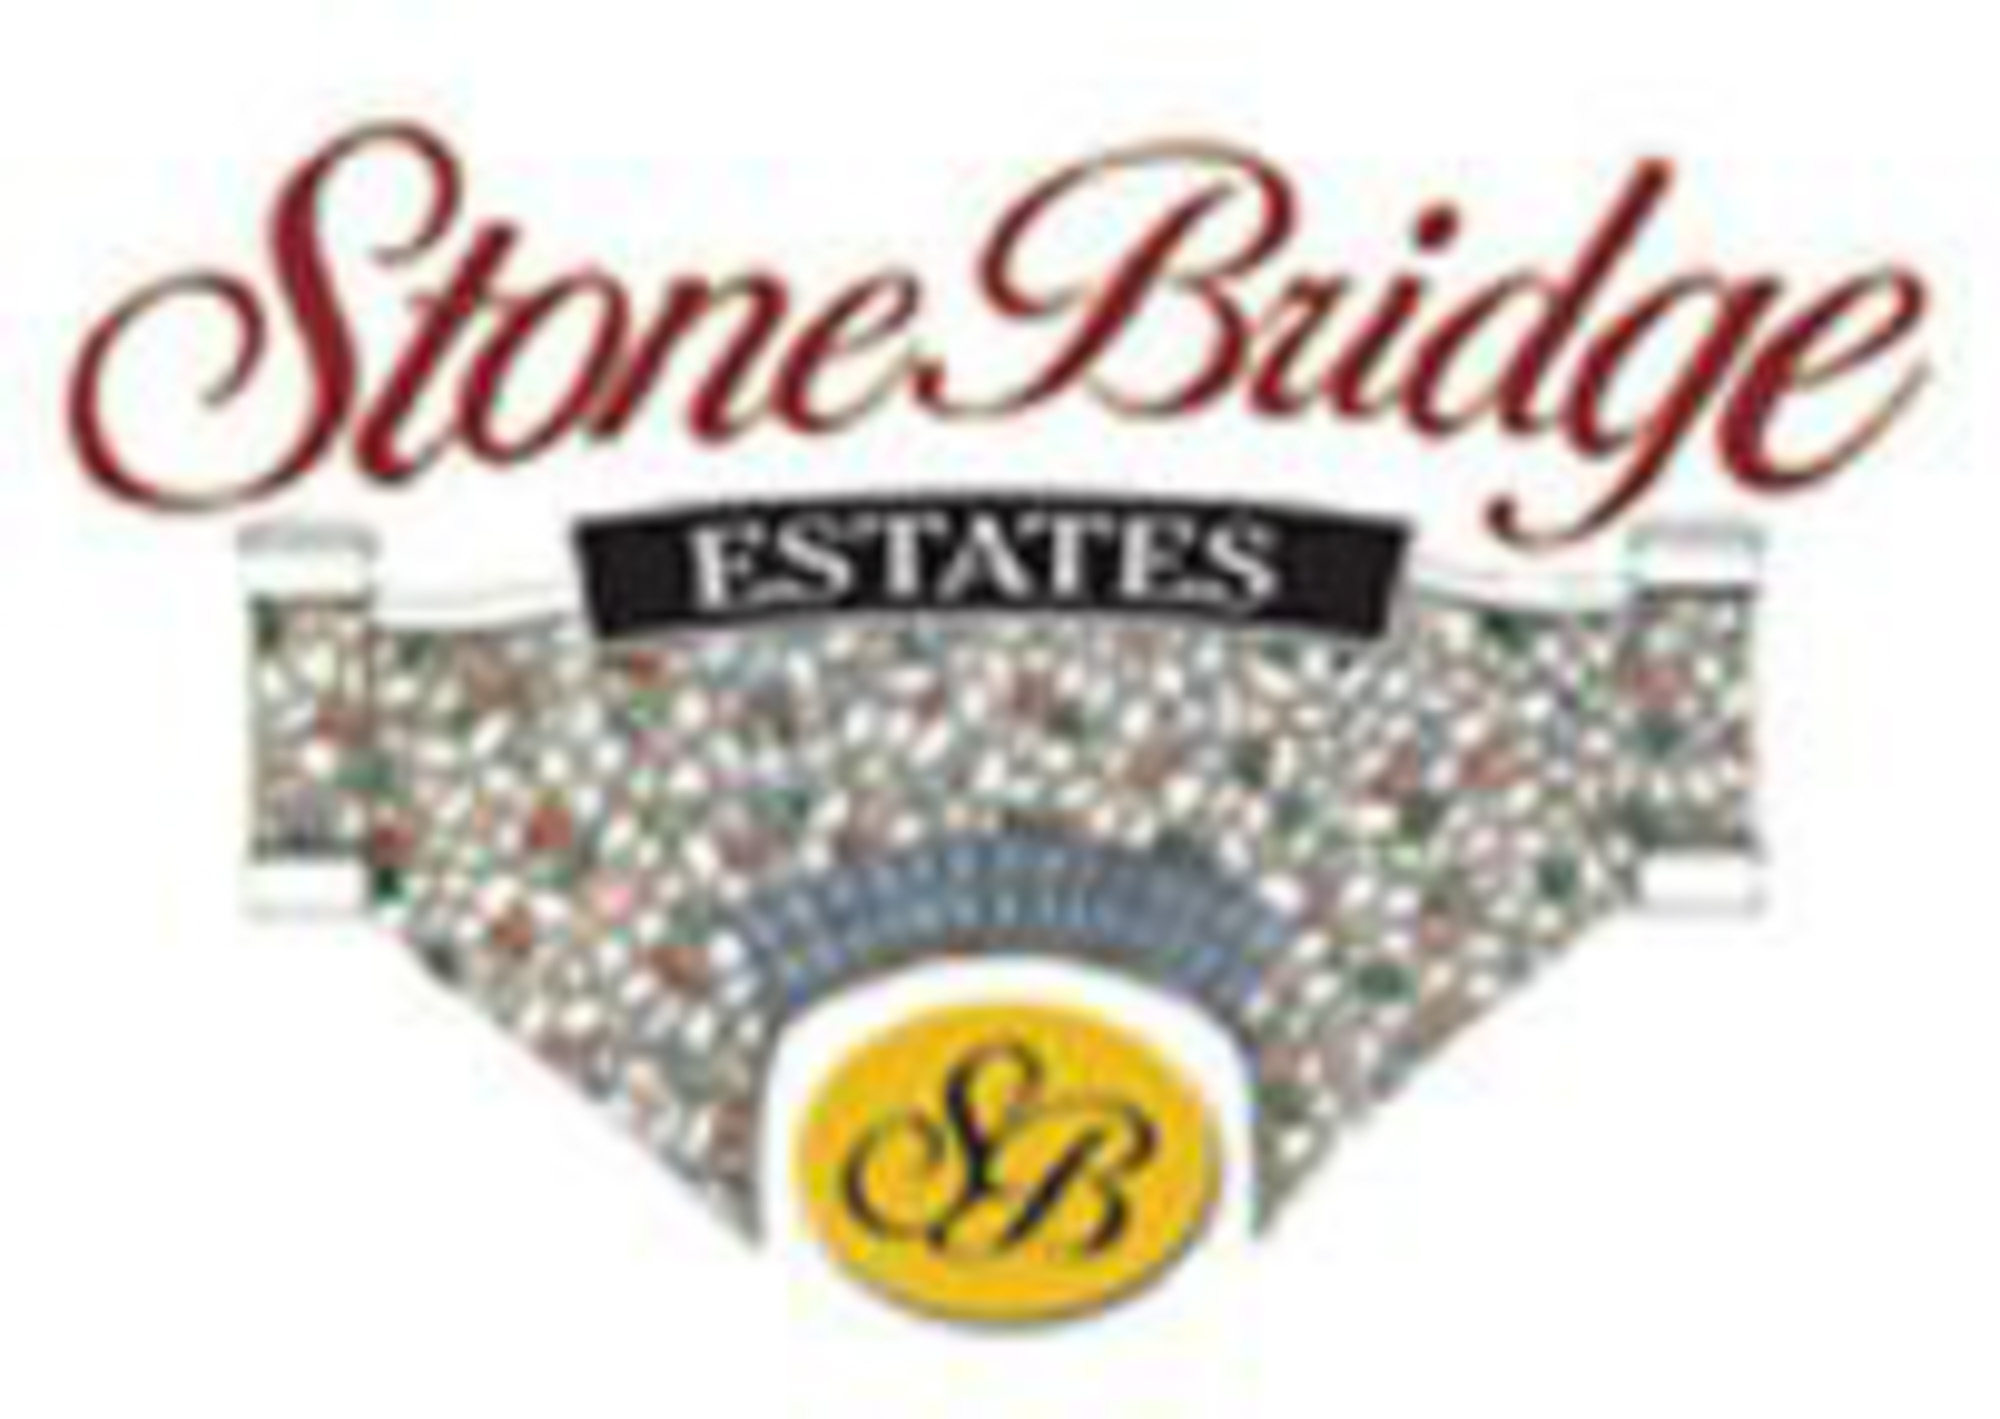 StoneBridge Estates LOGO